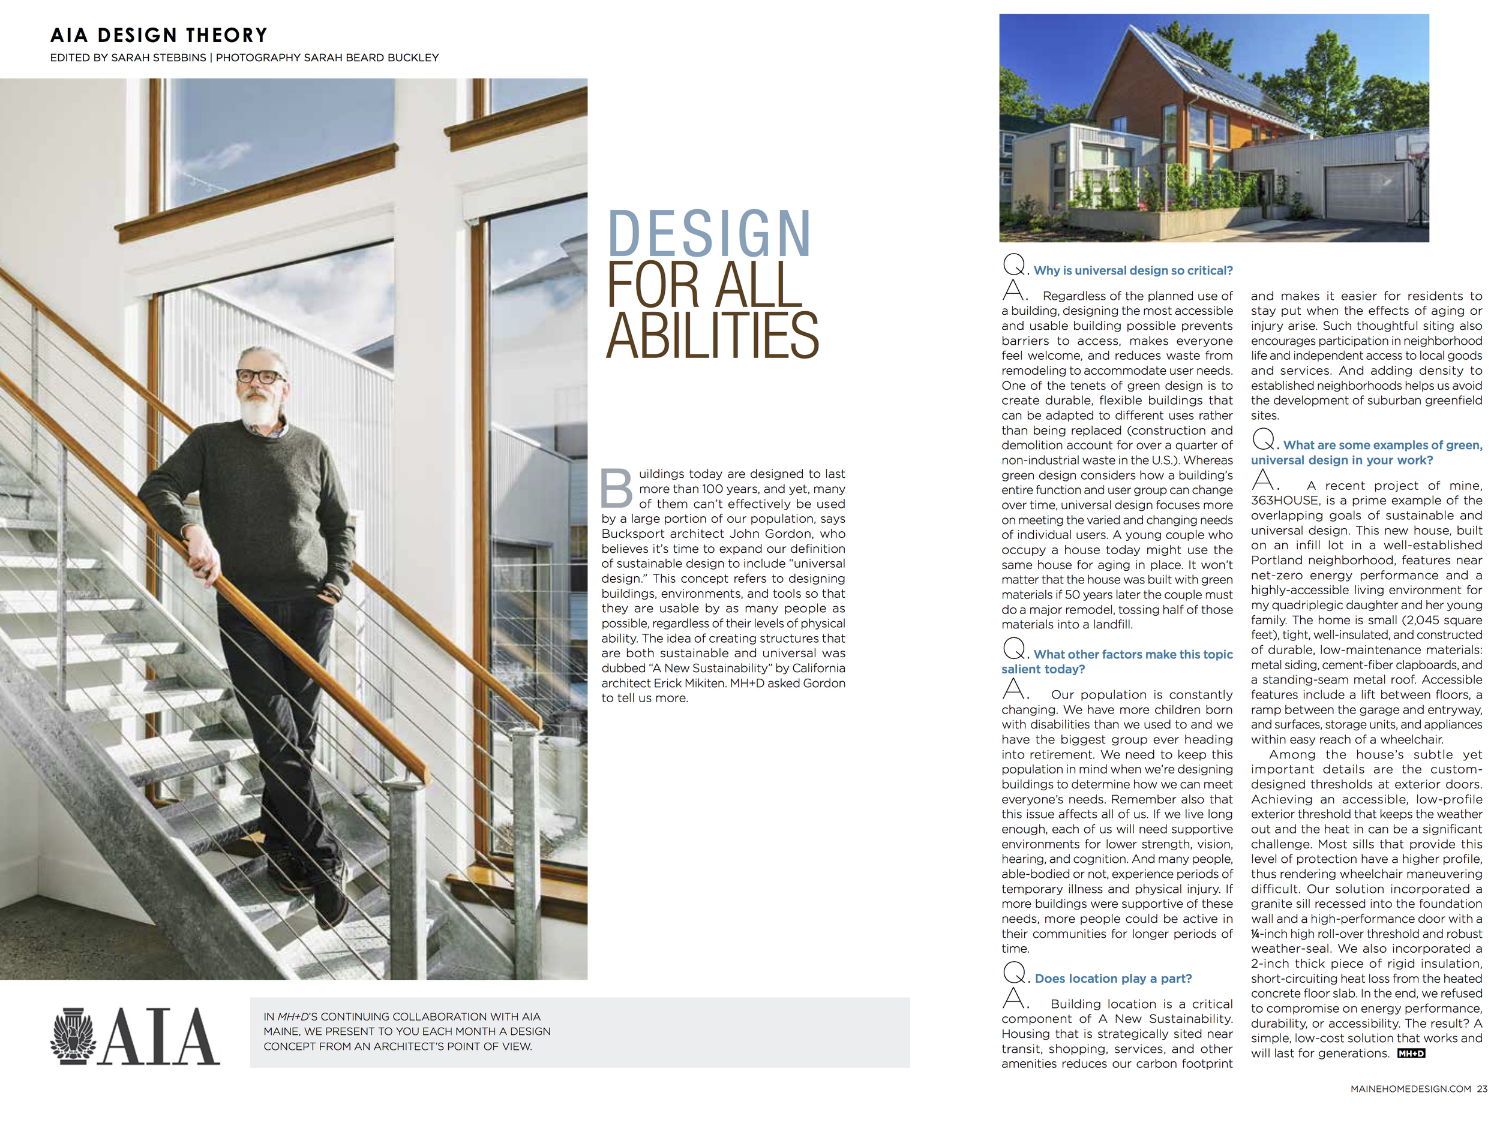 Feature article in May 2016 issue of Maine Home + Design (click on image for larger view).